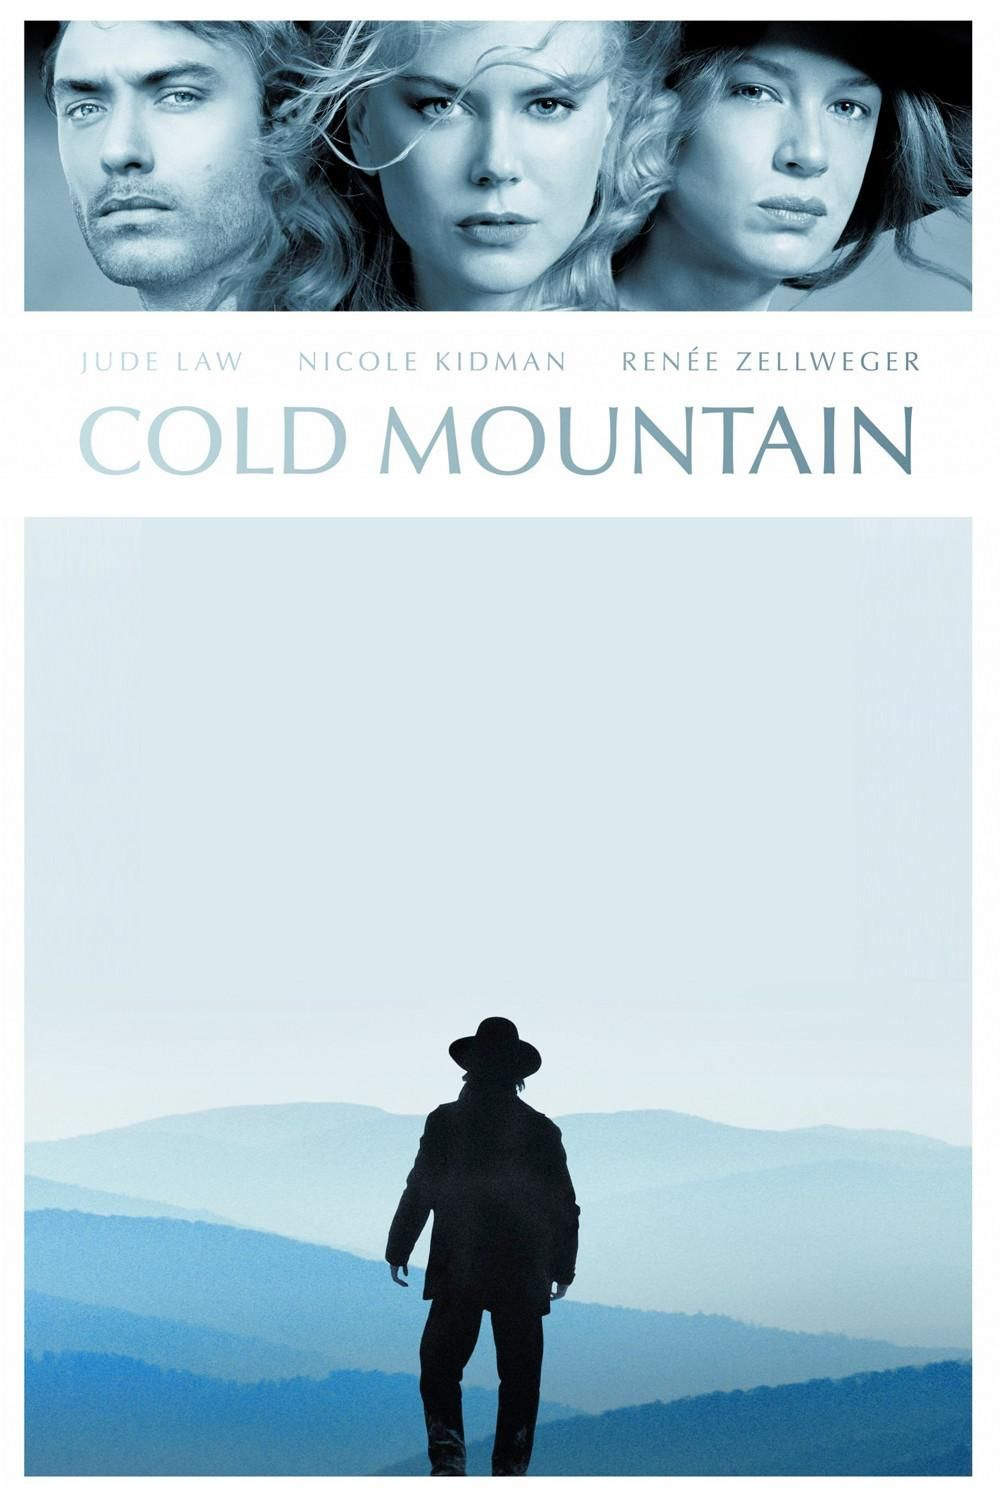 Cold Mountain Cold Mountain Streaming Movies Free Good Movies